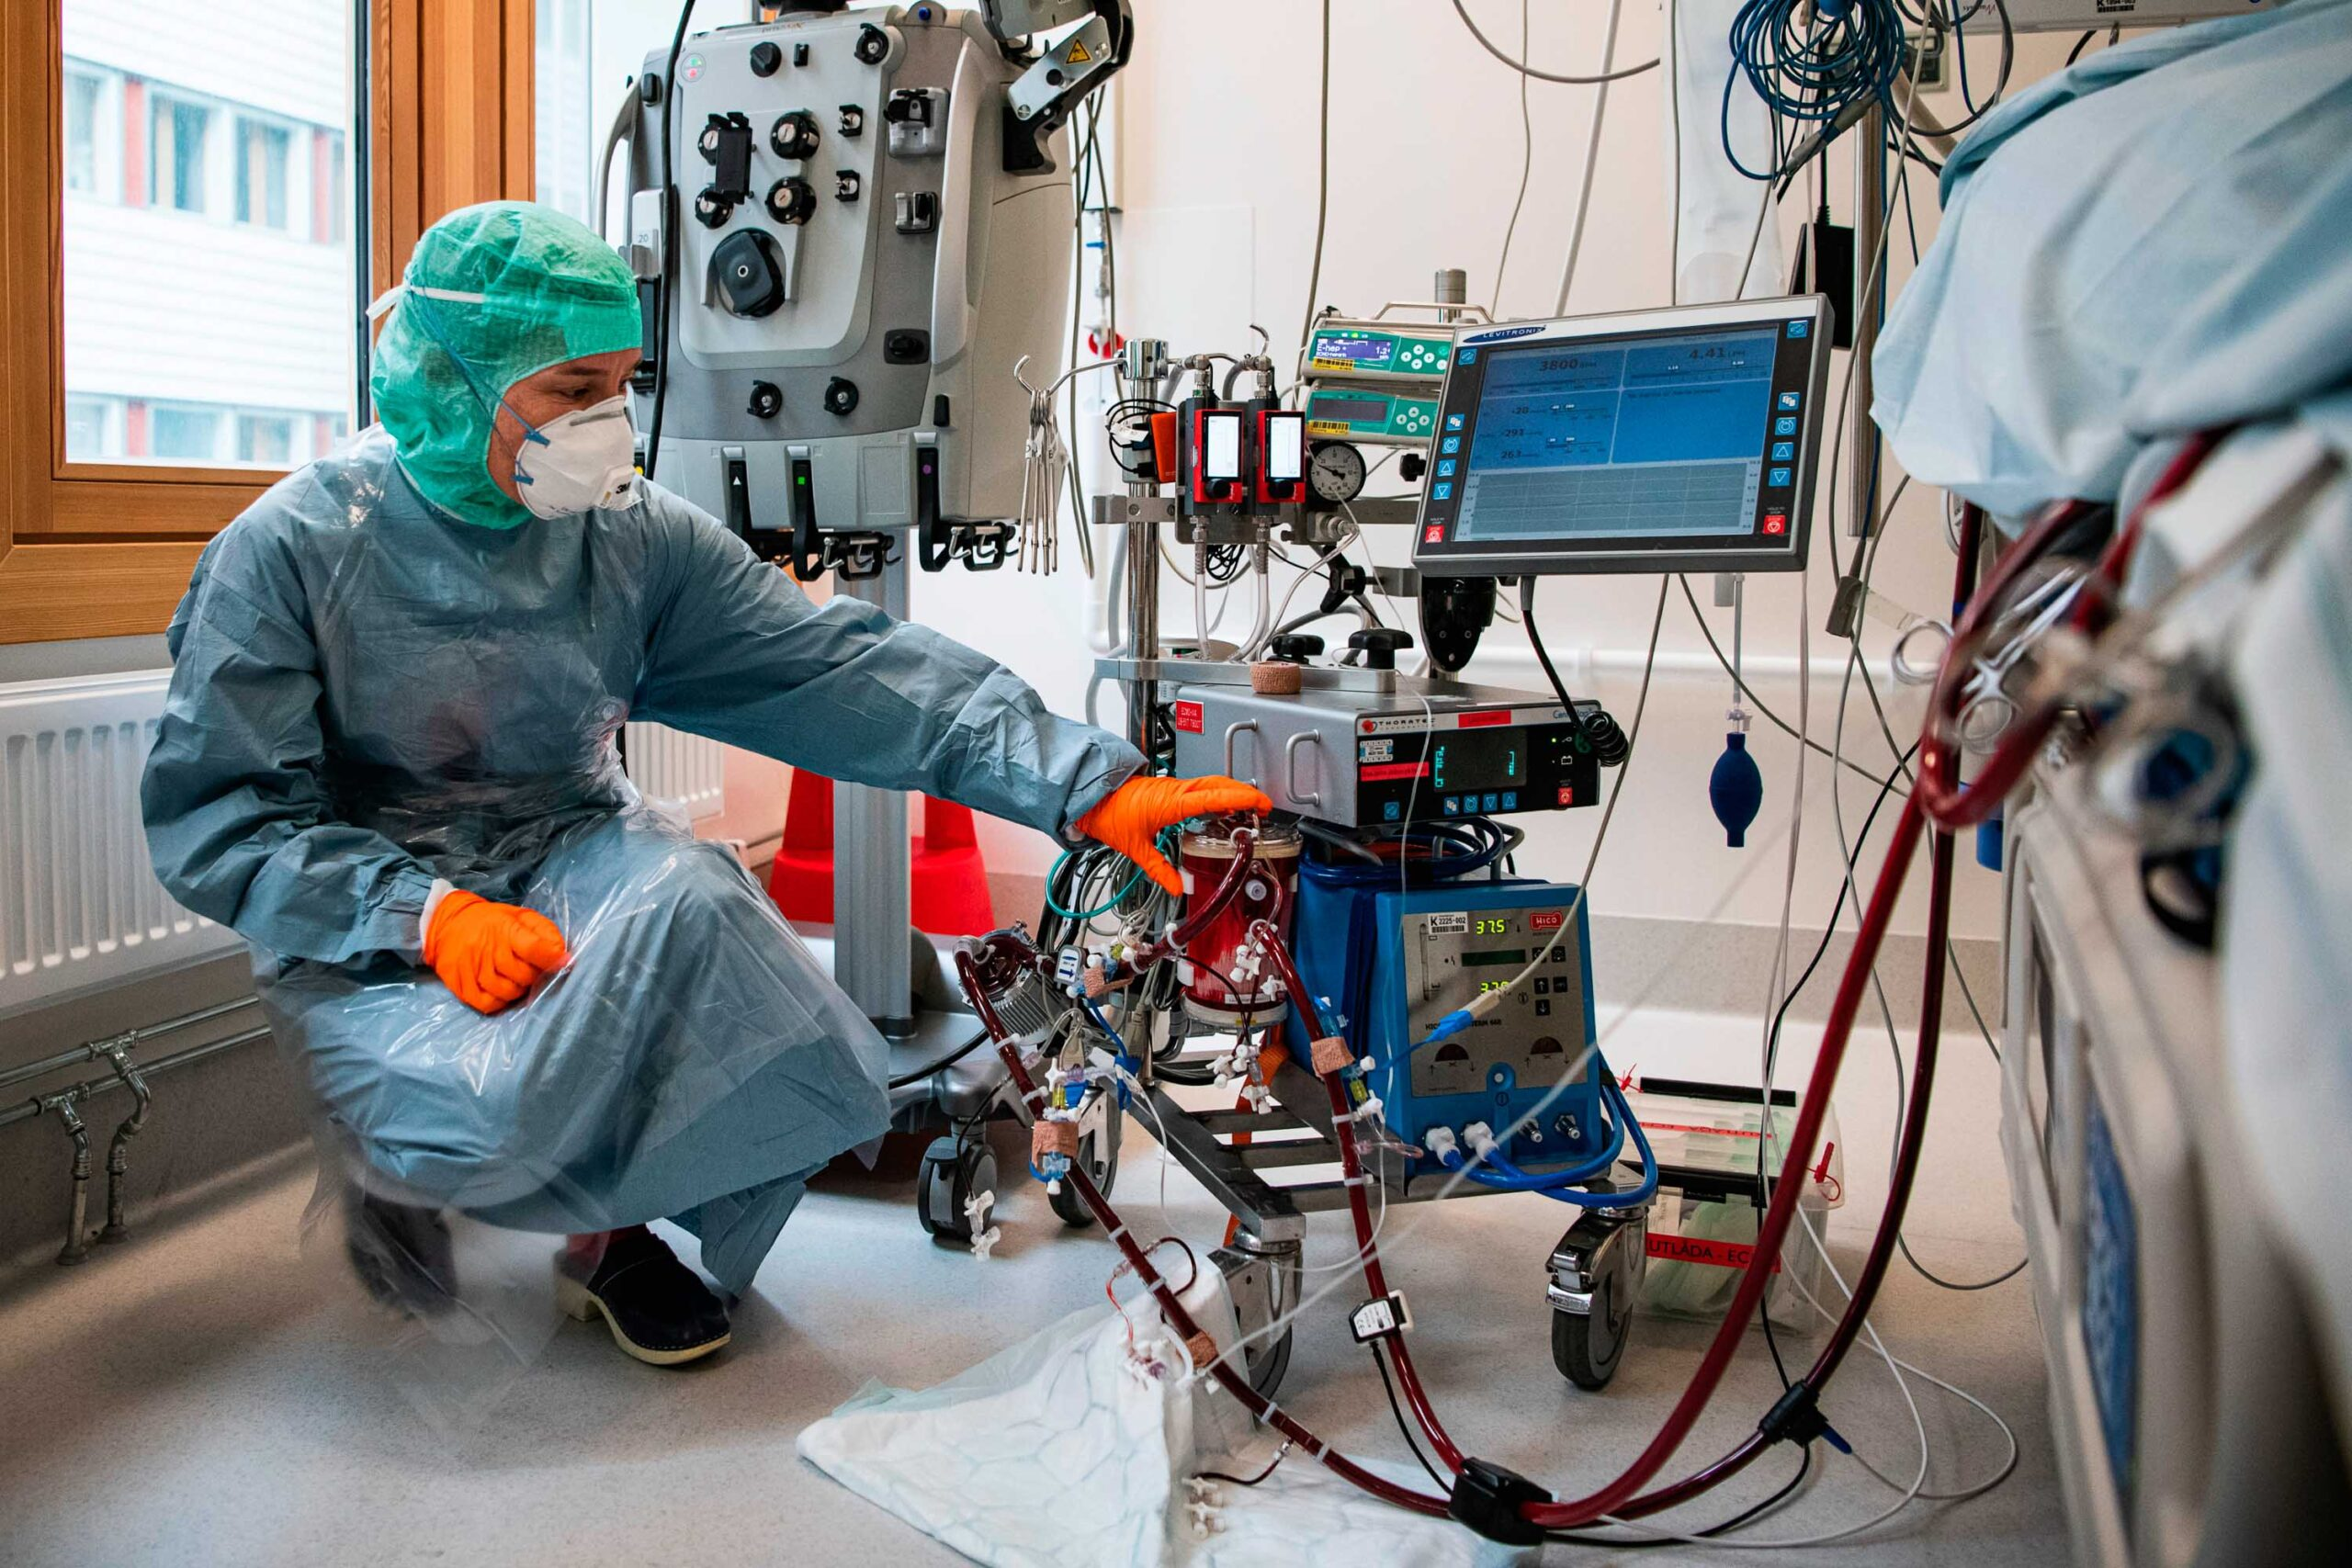 A nurse wearing protective clothing and face mask checks the blood on the ECMO machine as she takes care of a COVID-19 patient at the Extracorporeal Membrane Oxygenation (ECMO) department in the Karolinska hospital in Solna, near Stockholm, Sweden, on April 19, 2020 during the coronavirus COVID-19 pandemic. (Photo by Jonathan NACKSTRAND / AFP) (Photo by JONATHAN NACKSTRAND/AFP via Getty Images)